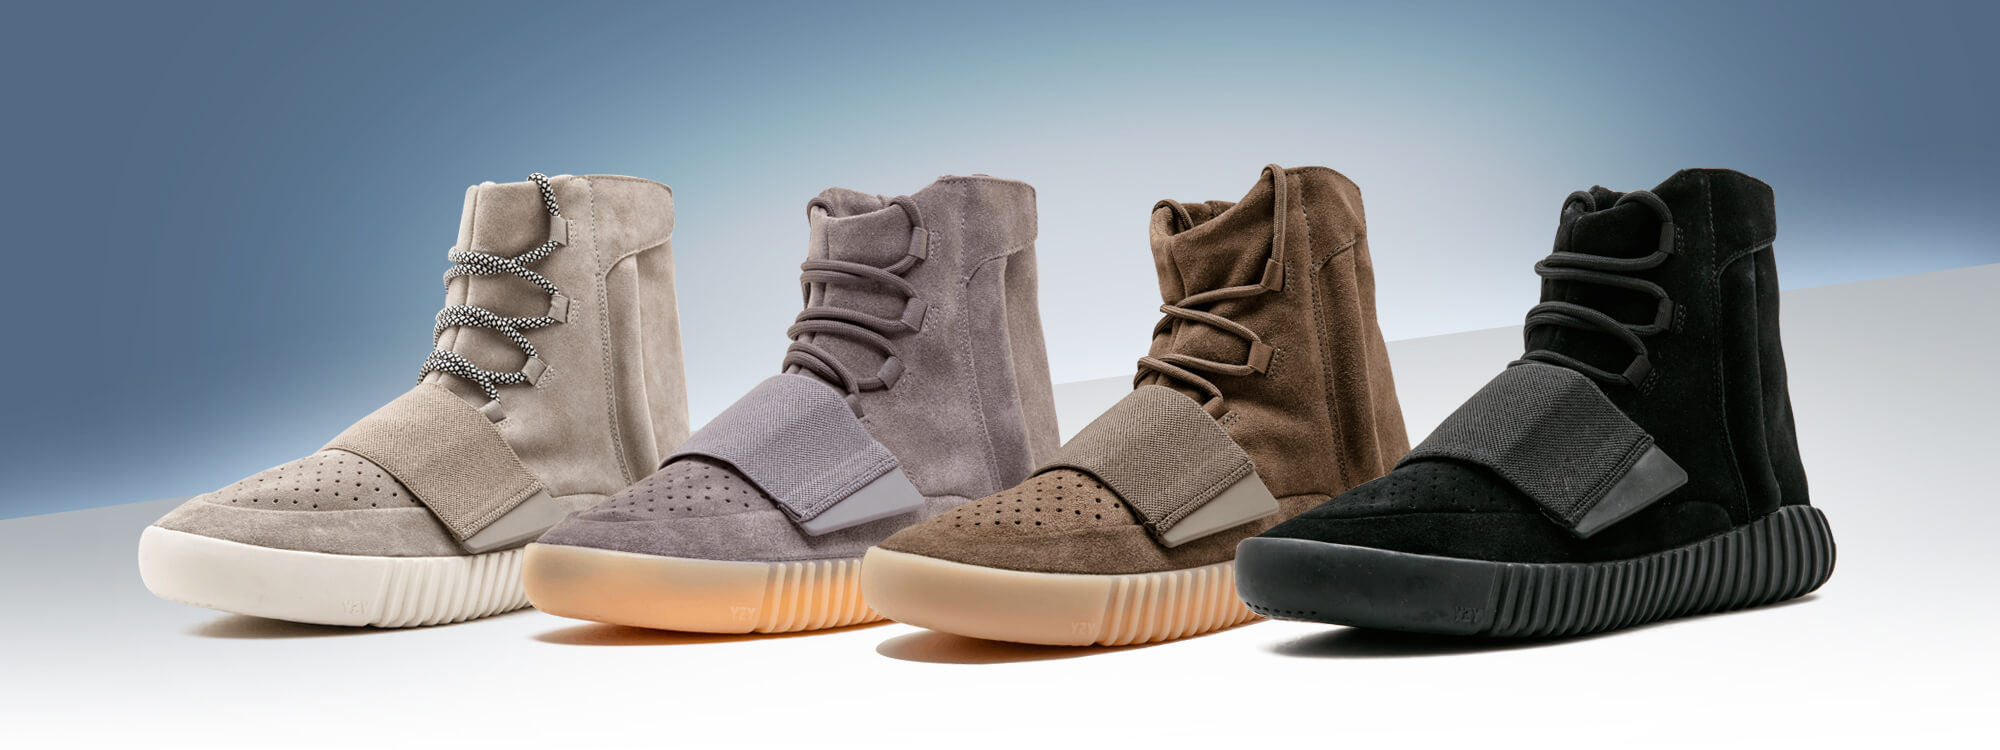 Buy new Adidas Yeezy Boost 750   unauthorized